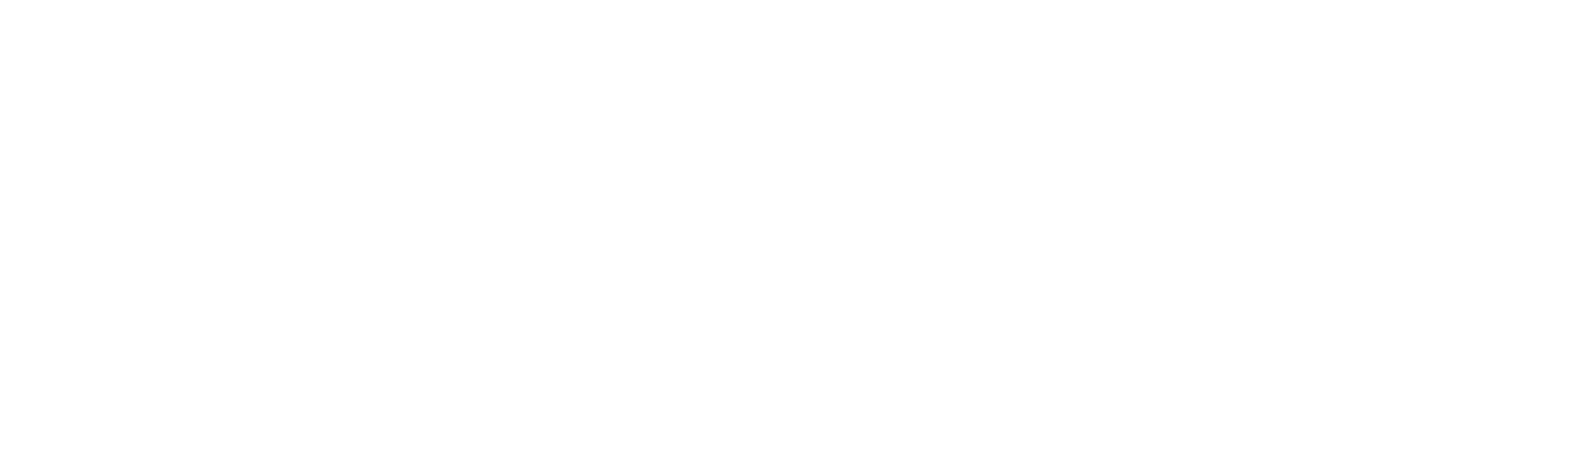 18_FFG_Logo_SubLogo_Accounting Solutions_White.png